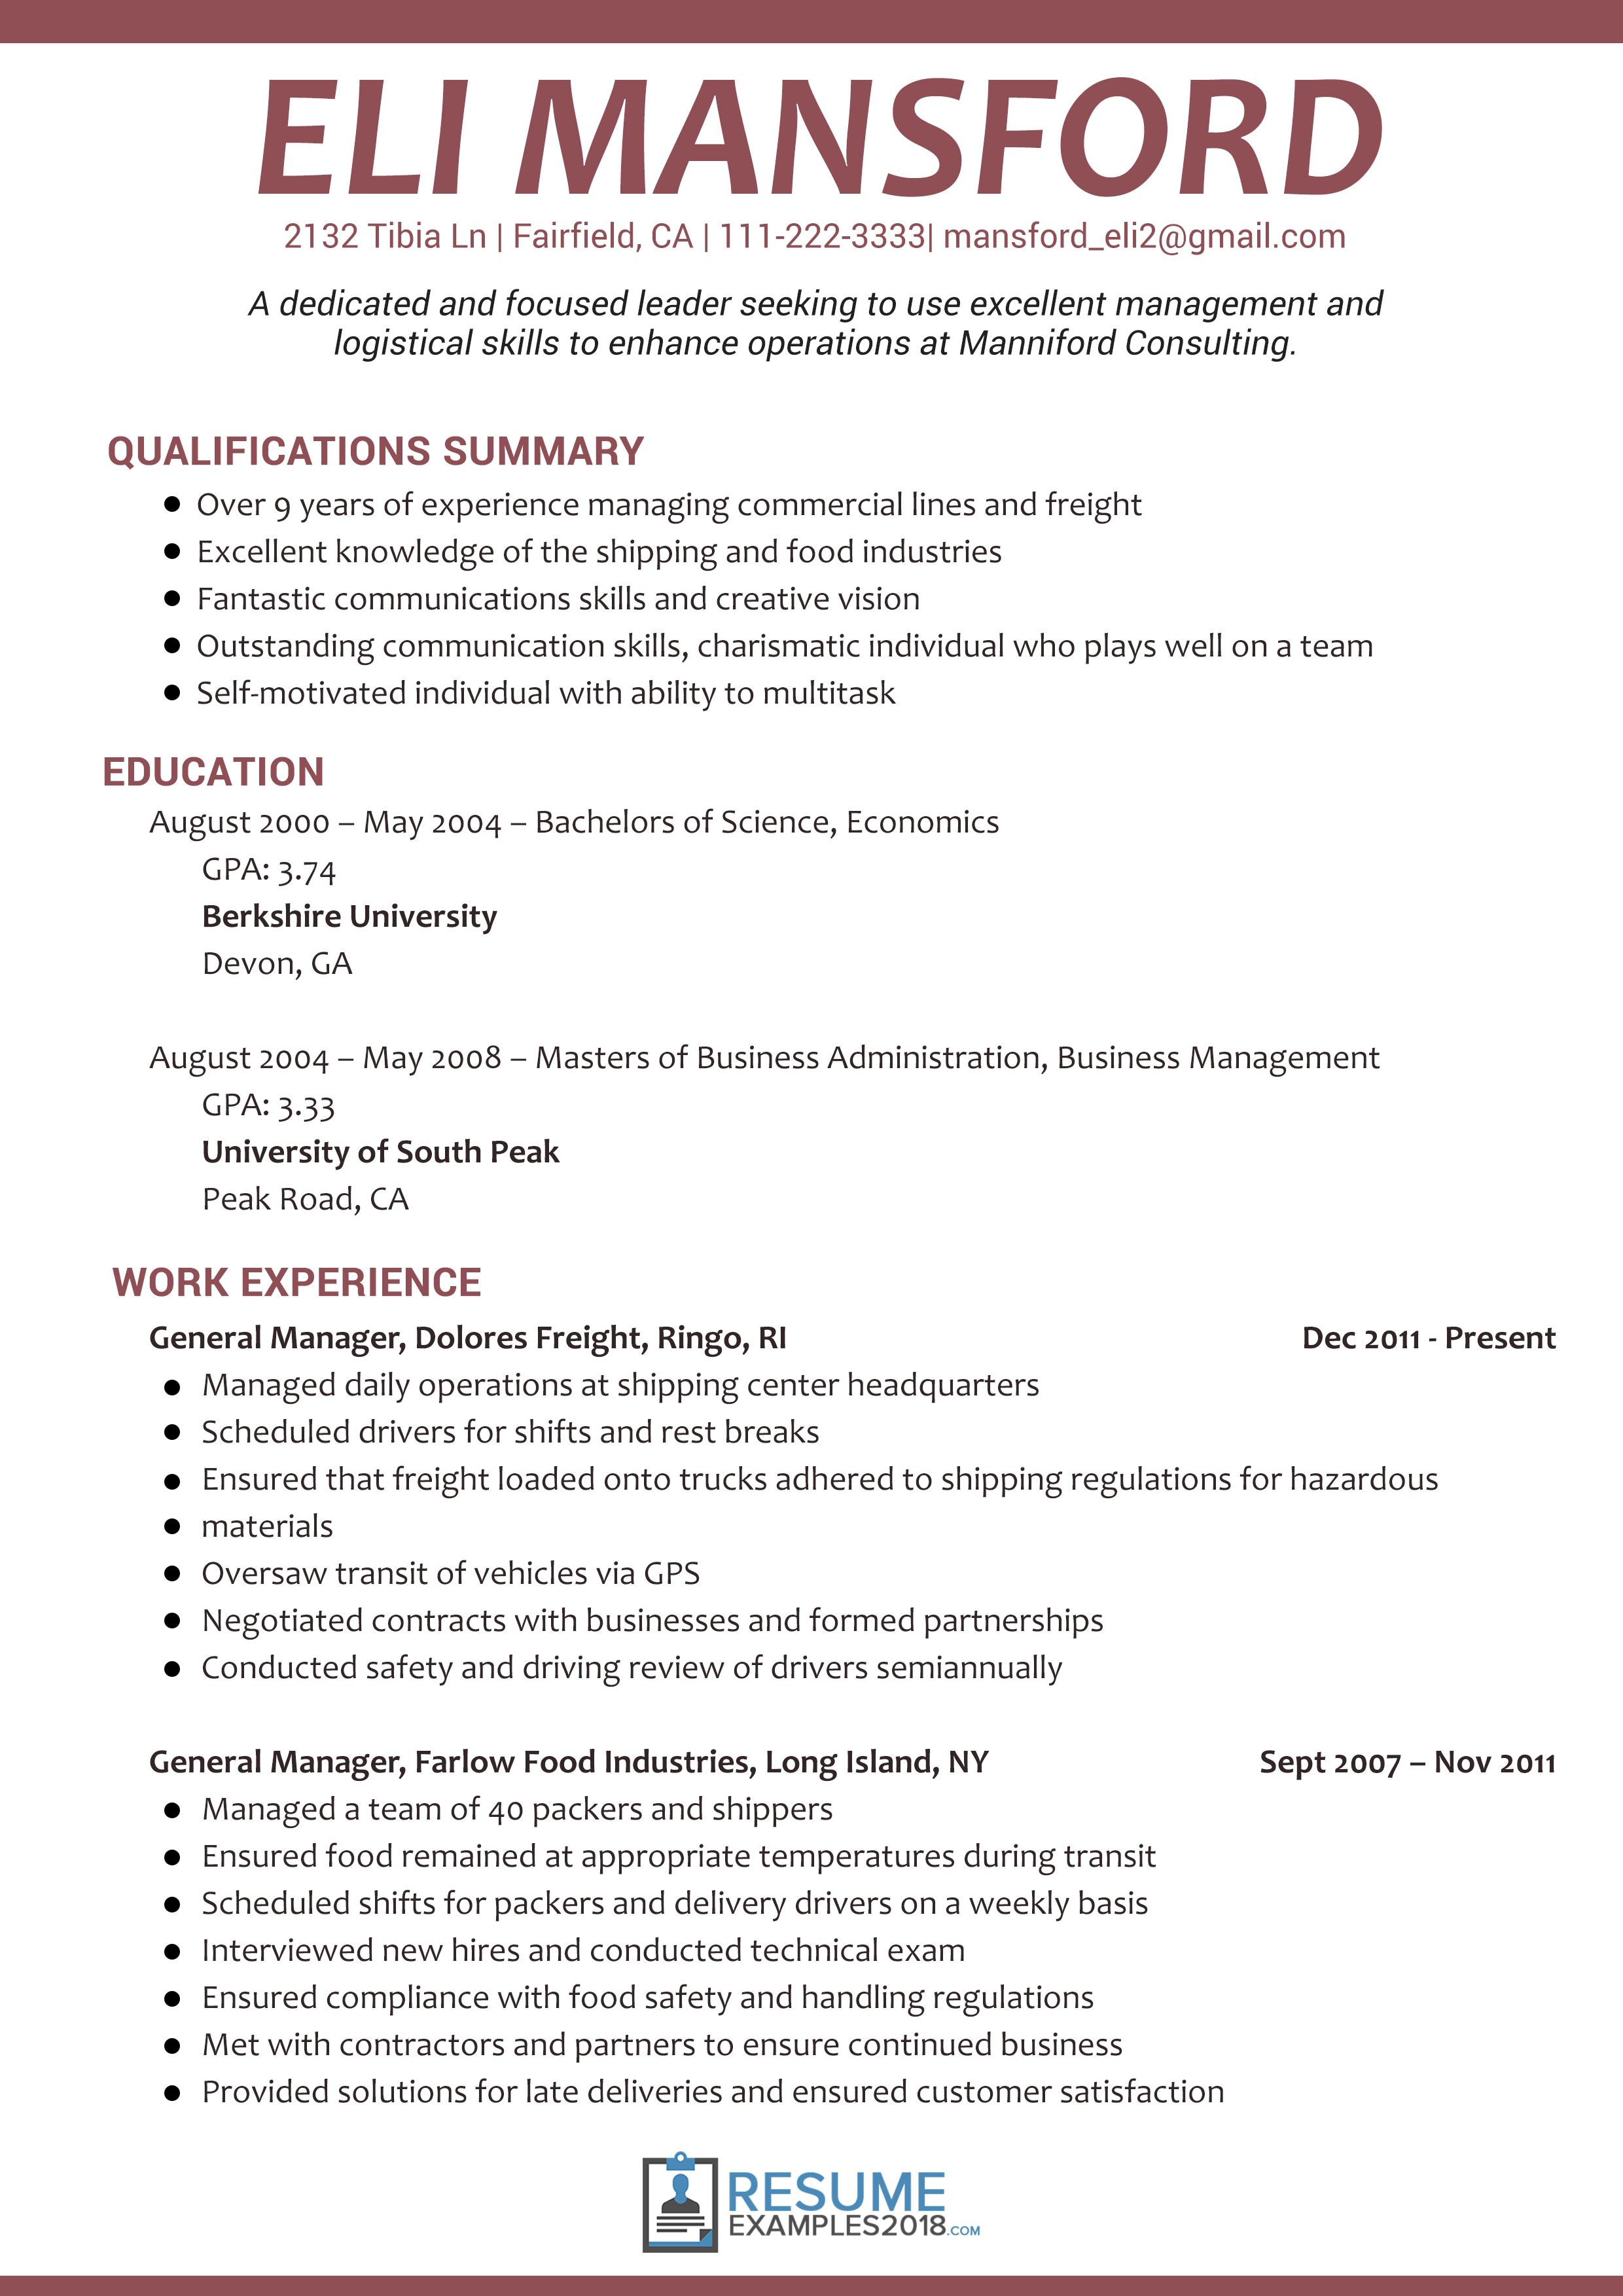 Resume Examples 2018 For Students Student Resume Template